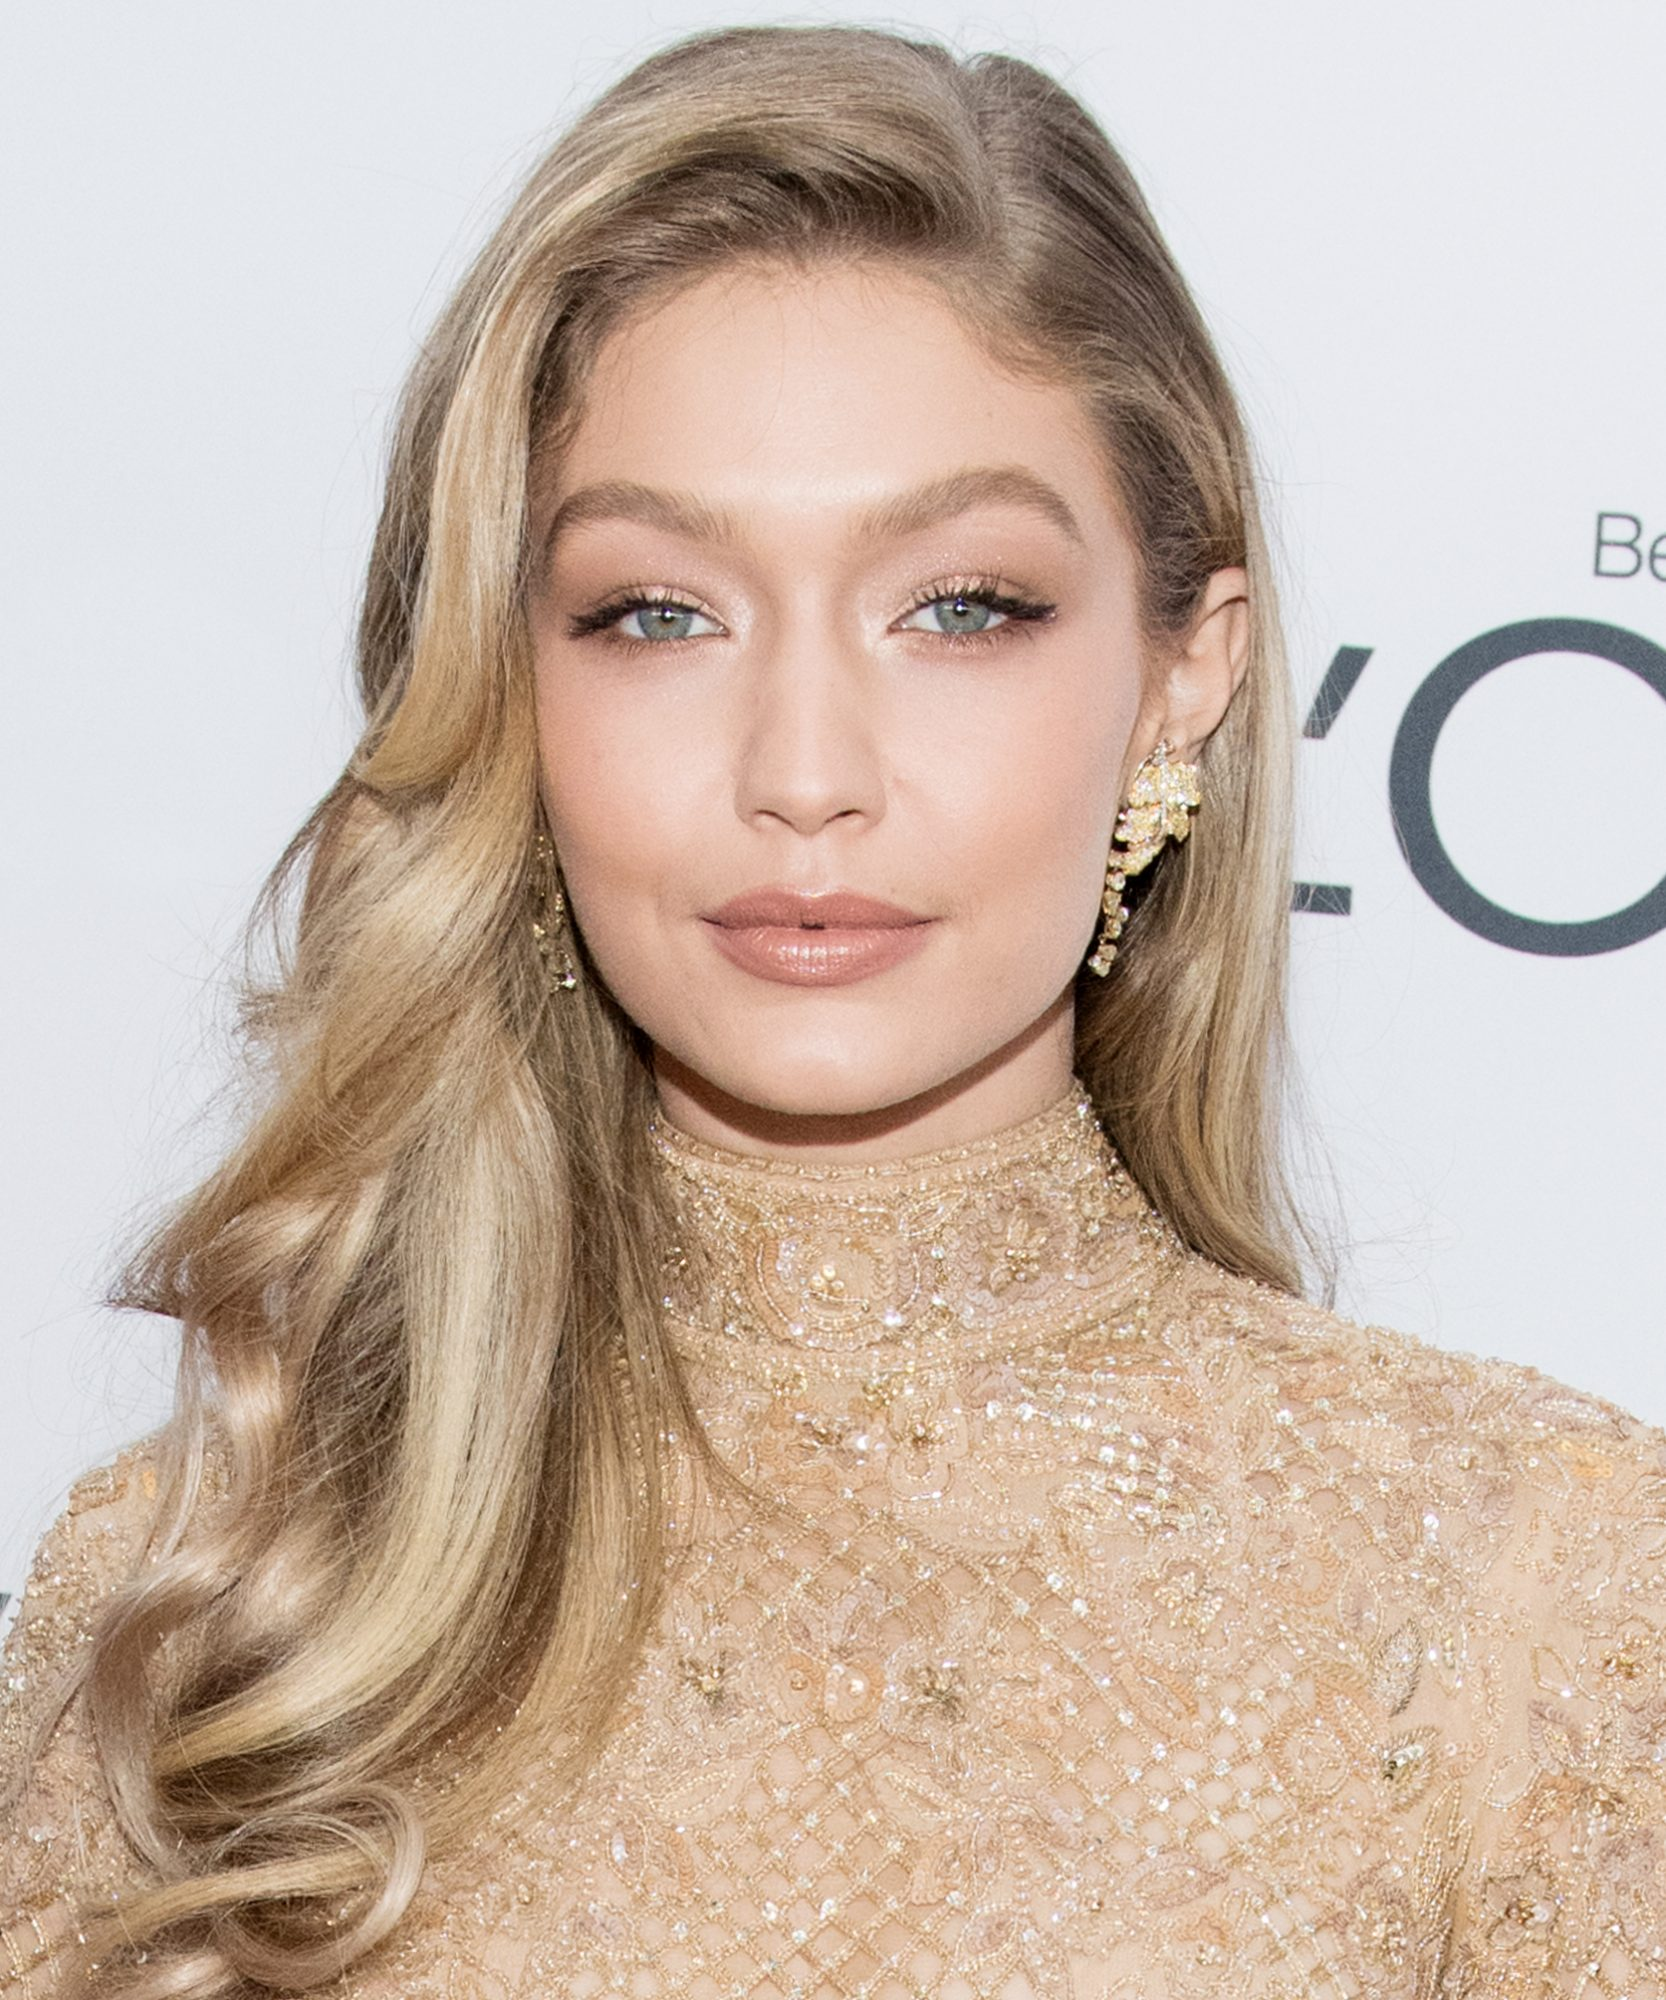 Gigi Hadid's Side-Swept Waves